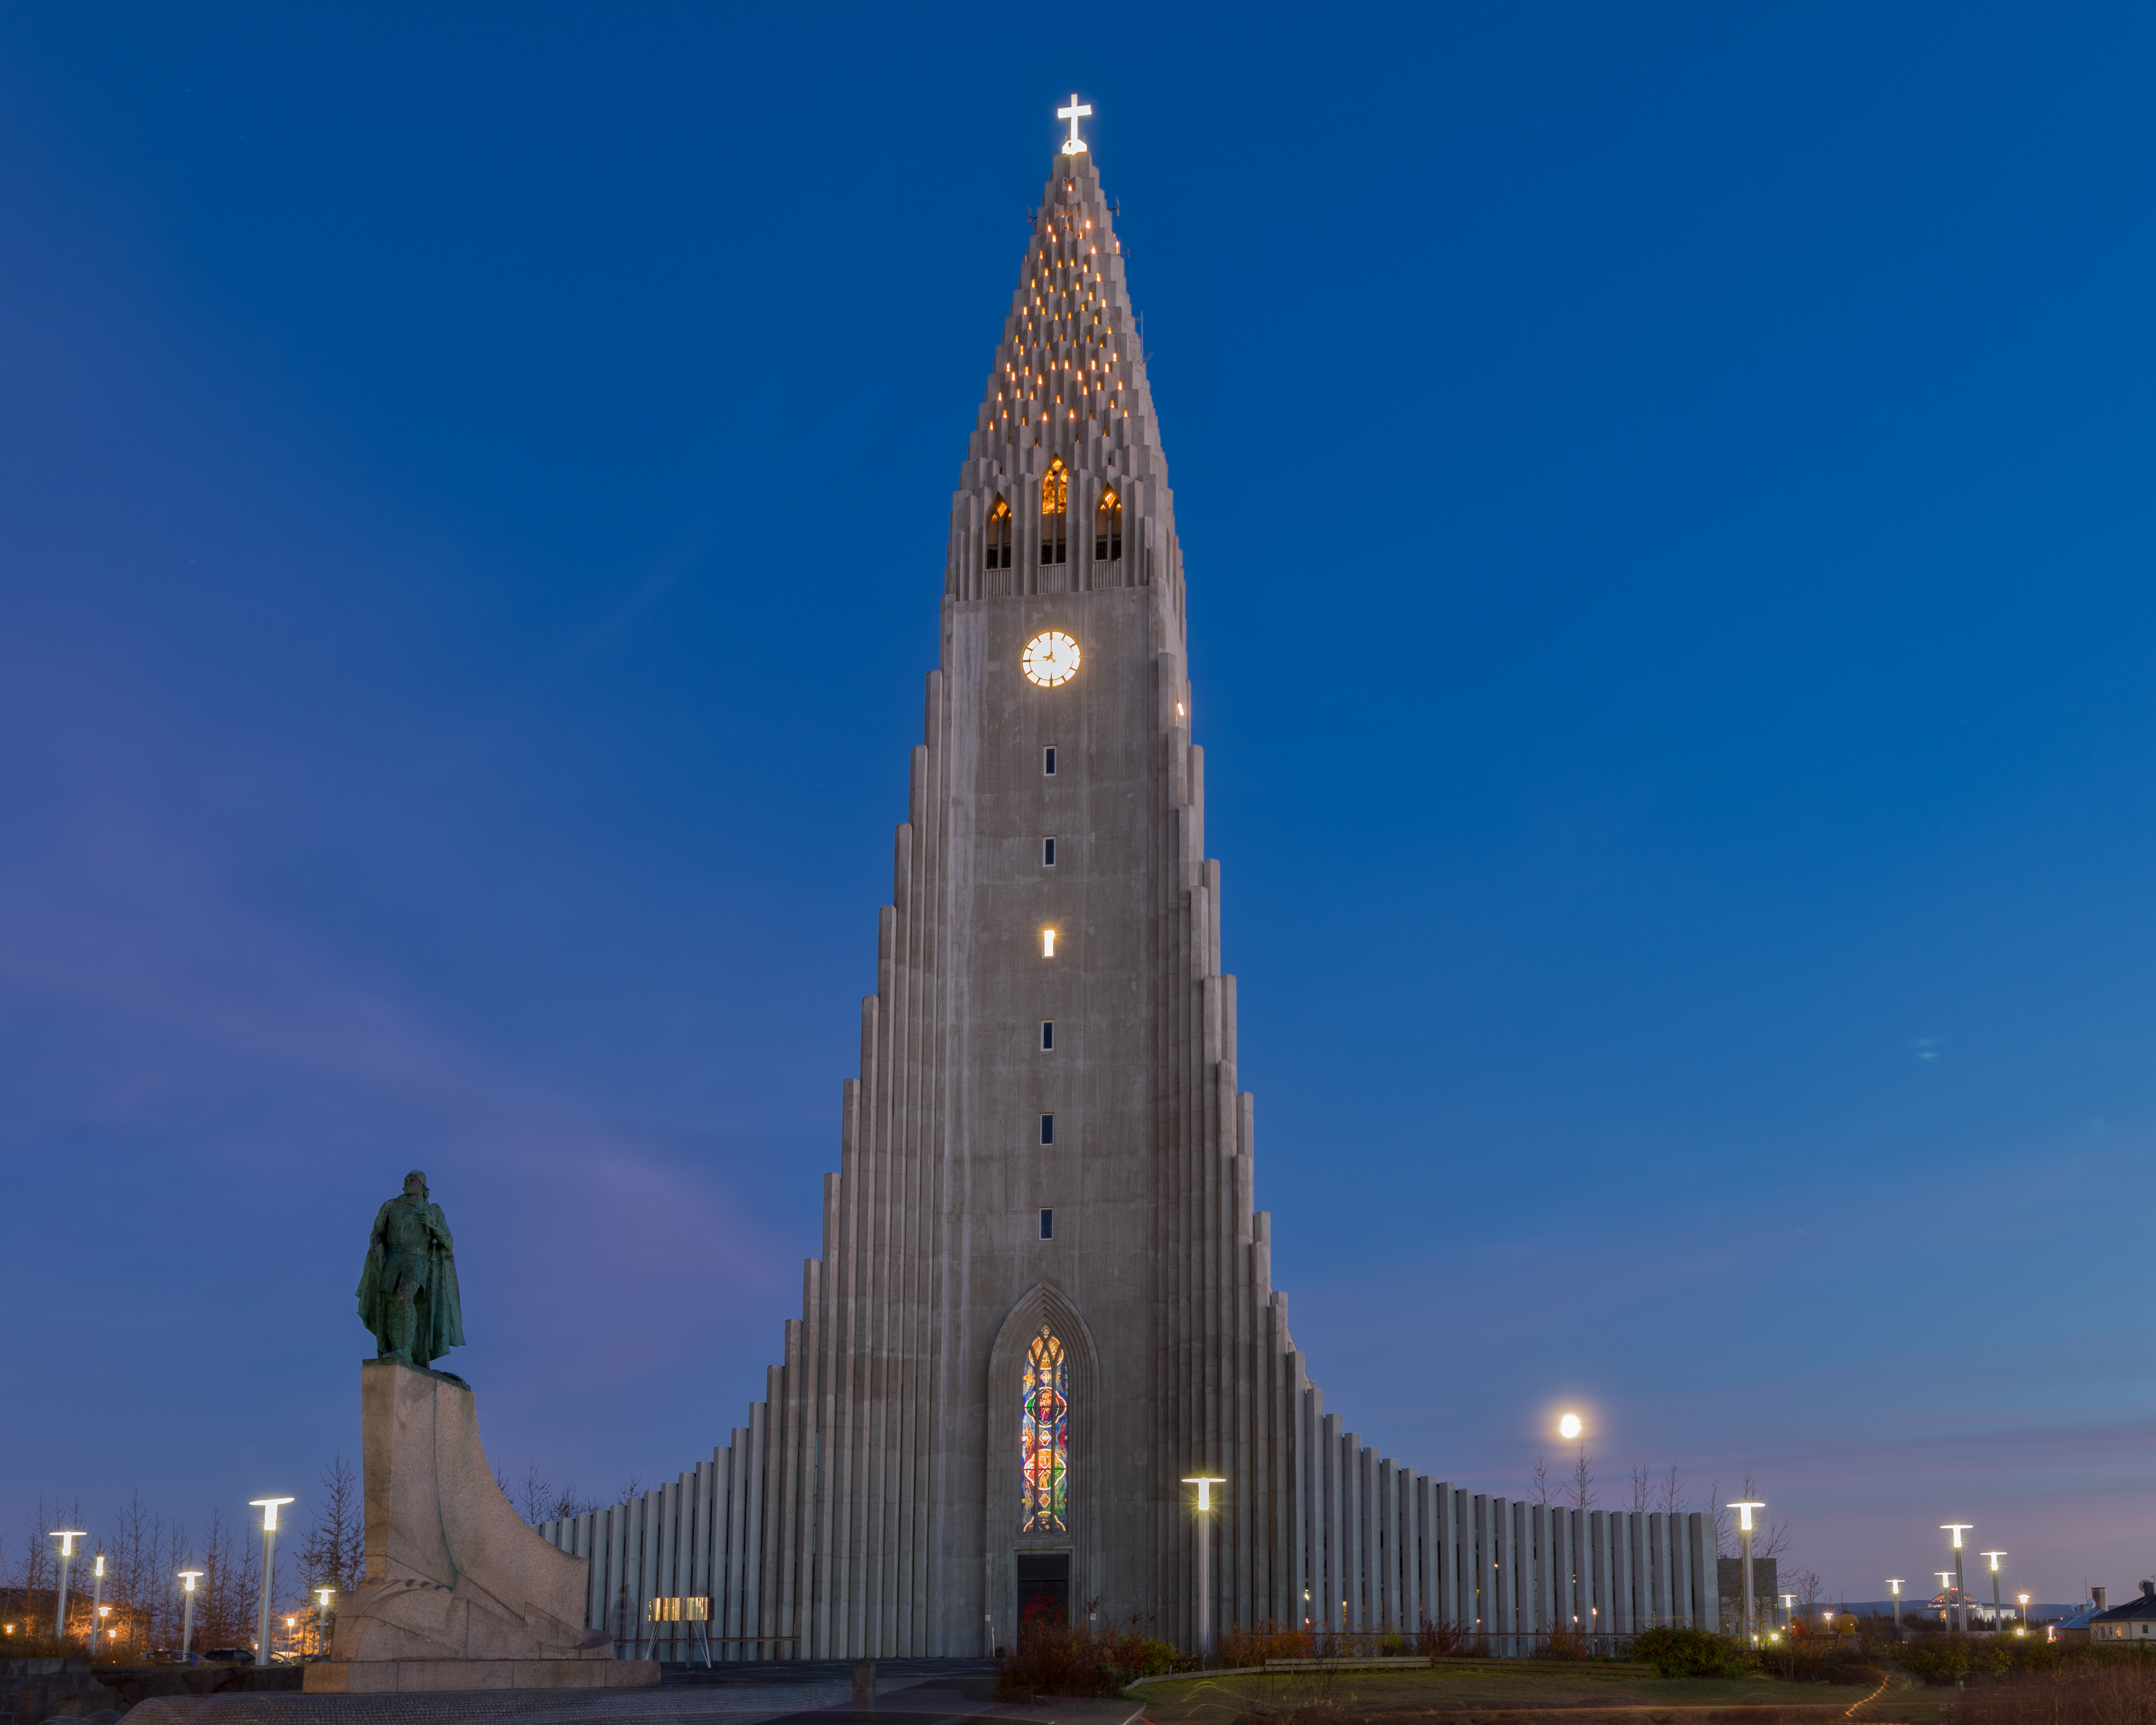 Hallgrímskirkja or the church of Hallgrimur, is a Lurtheran Church in Reykjavik, Iceland. The church is the tallest building in Icelnad.